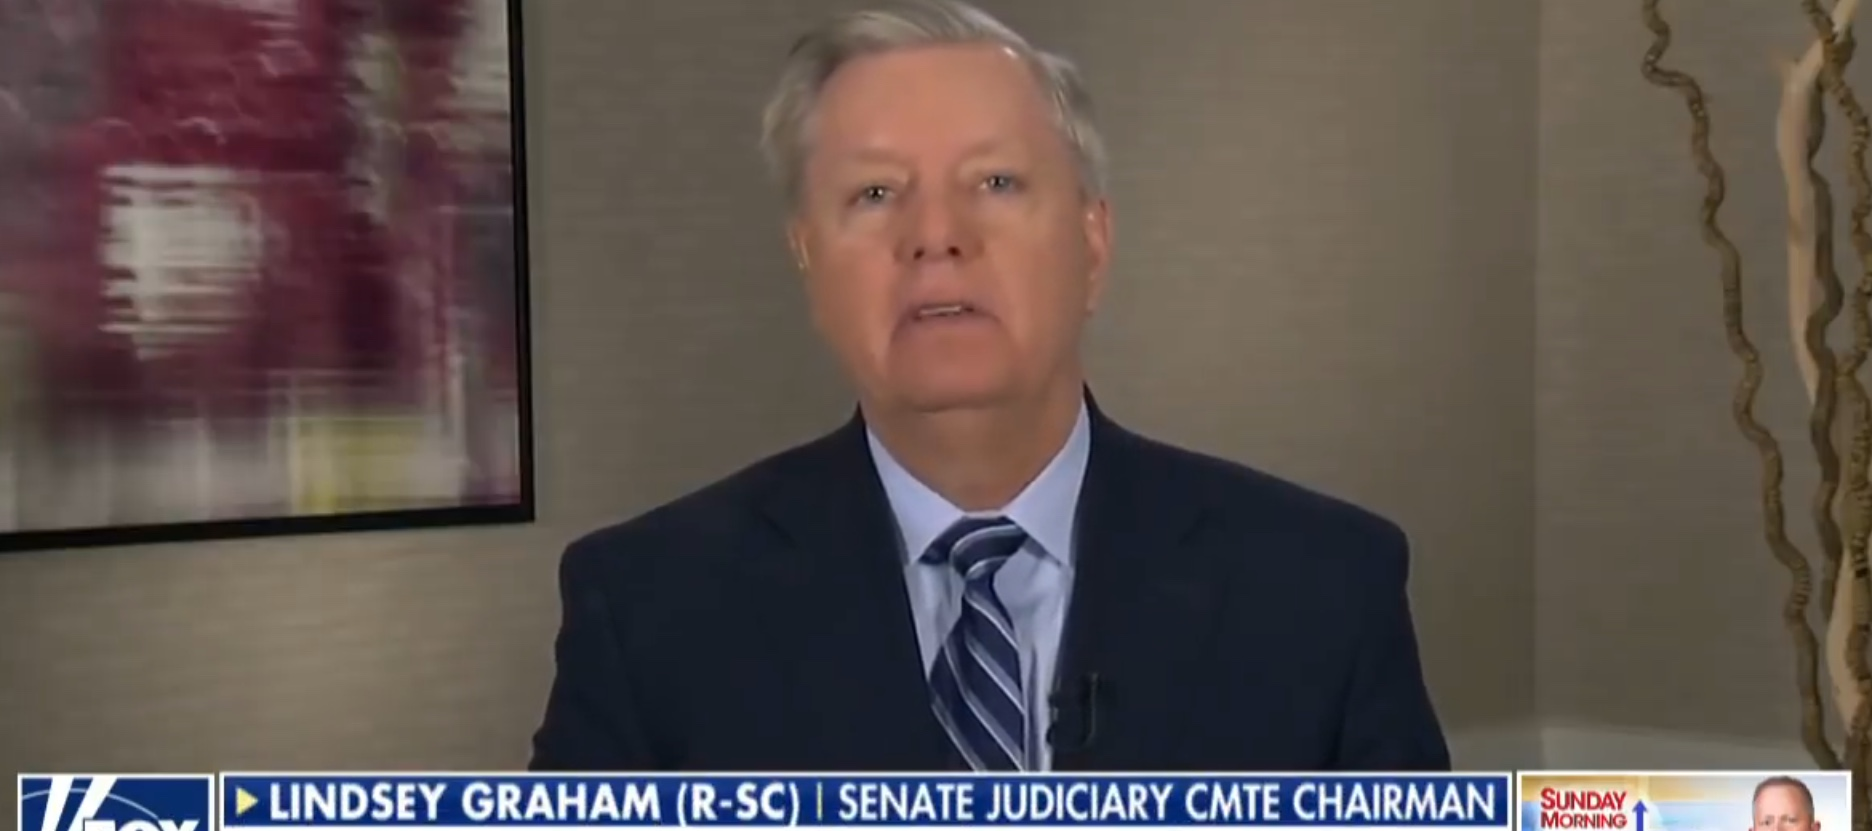 """S.C. Republican Sen. Lindsey Graham appears on Fox News' """"Sunday Morning Futures"""" to discuss Clinton emails, March 31, 2019. YouTube screenshot"""